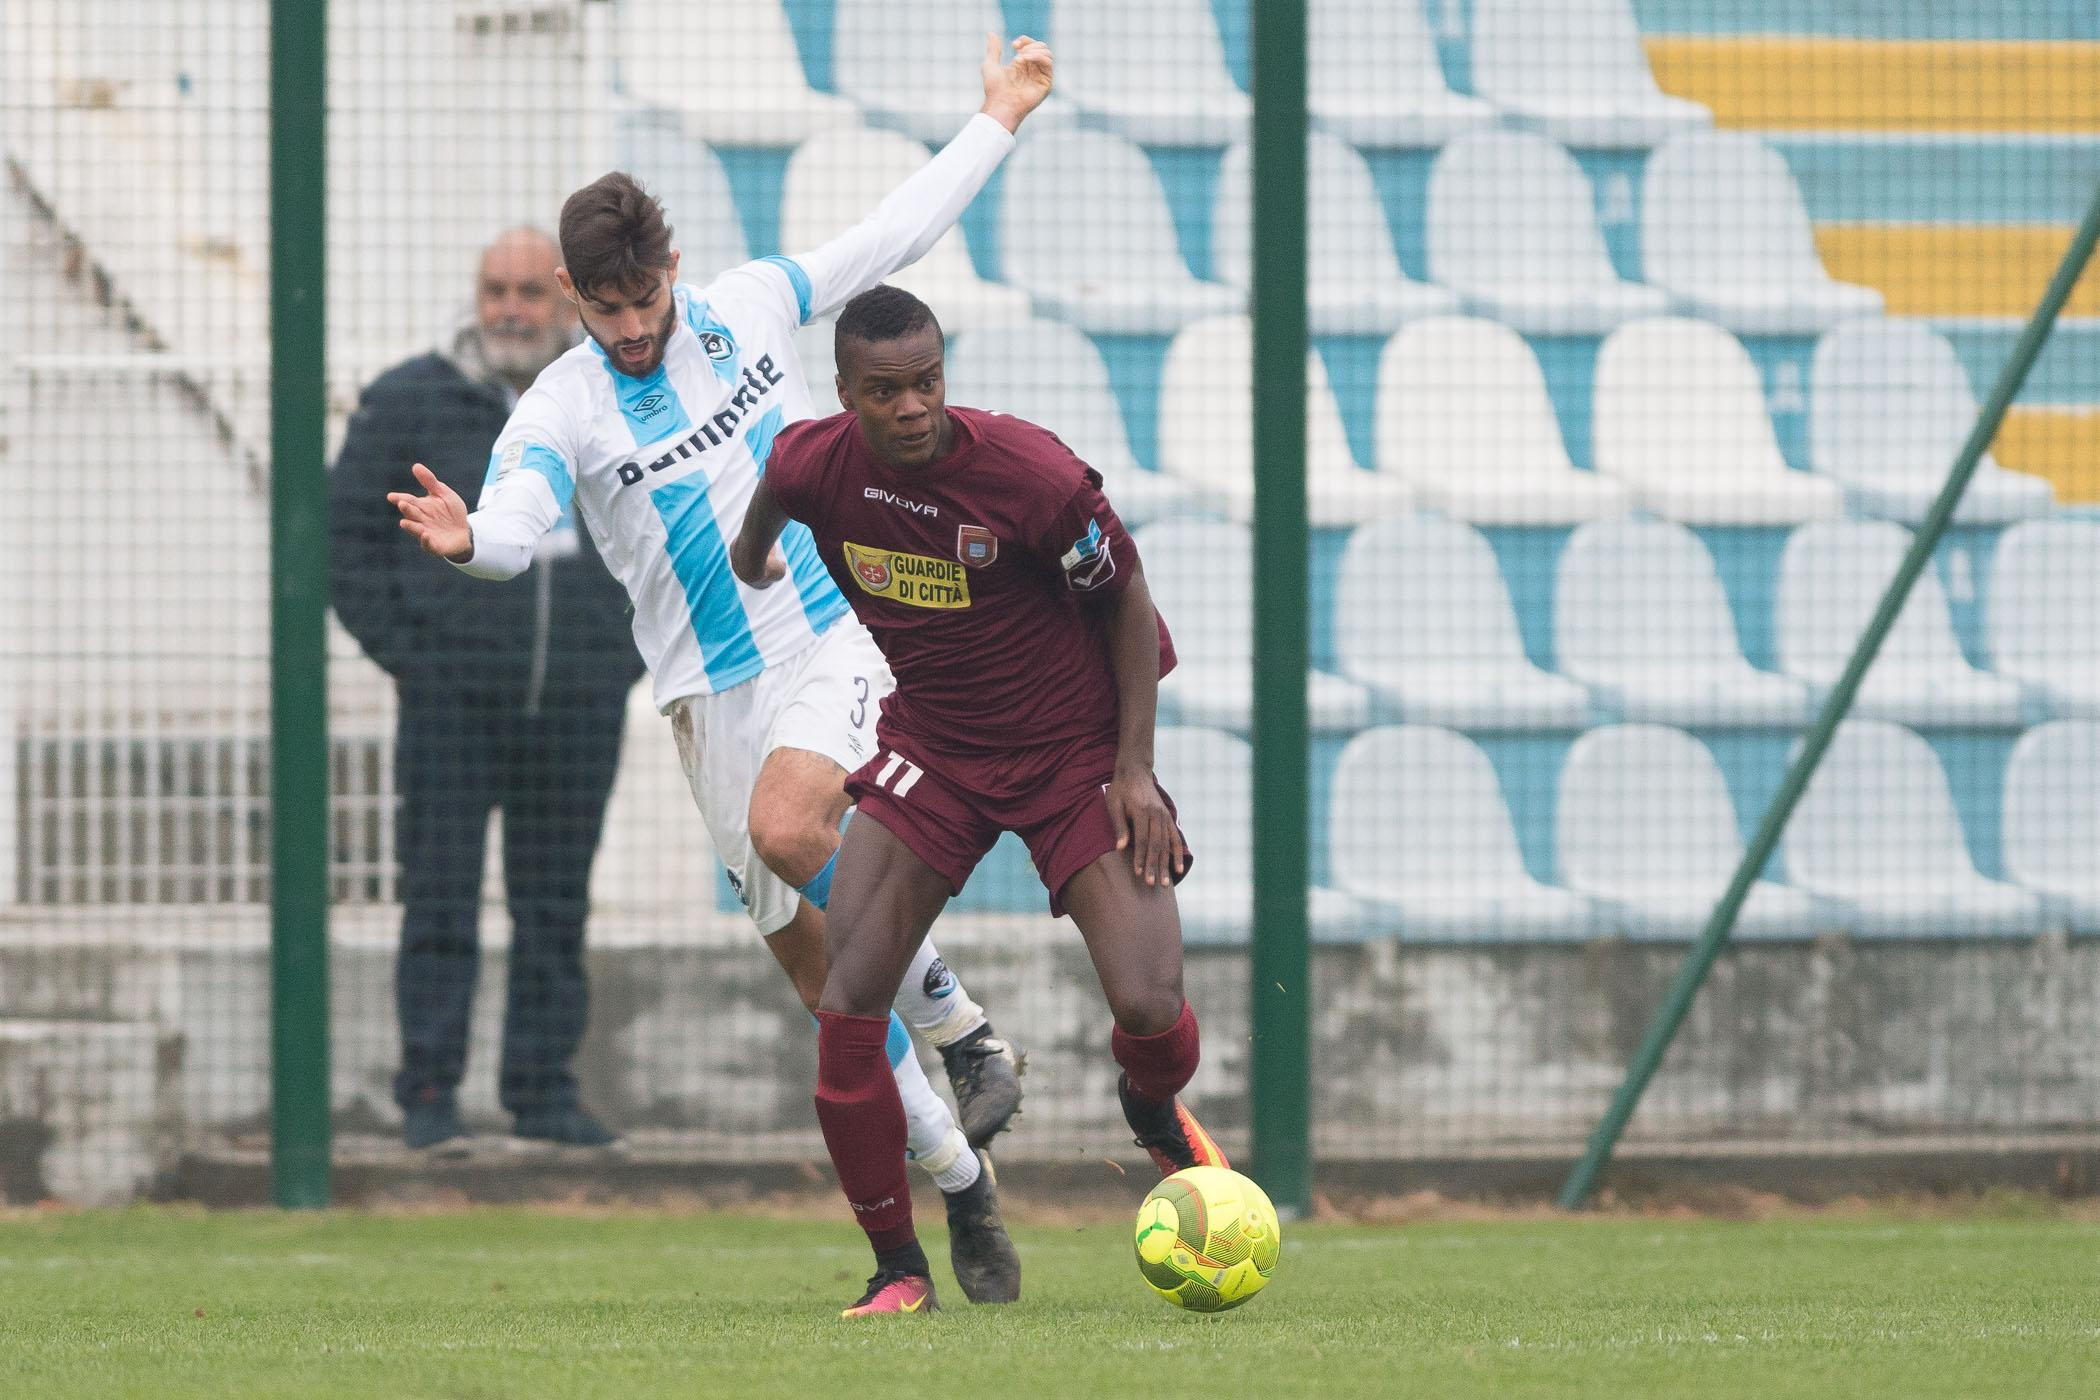 King Udoh (Pianese - Calcio)